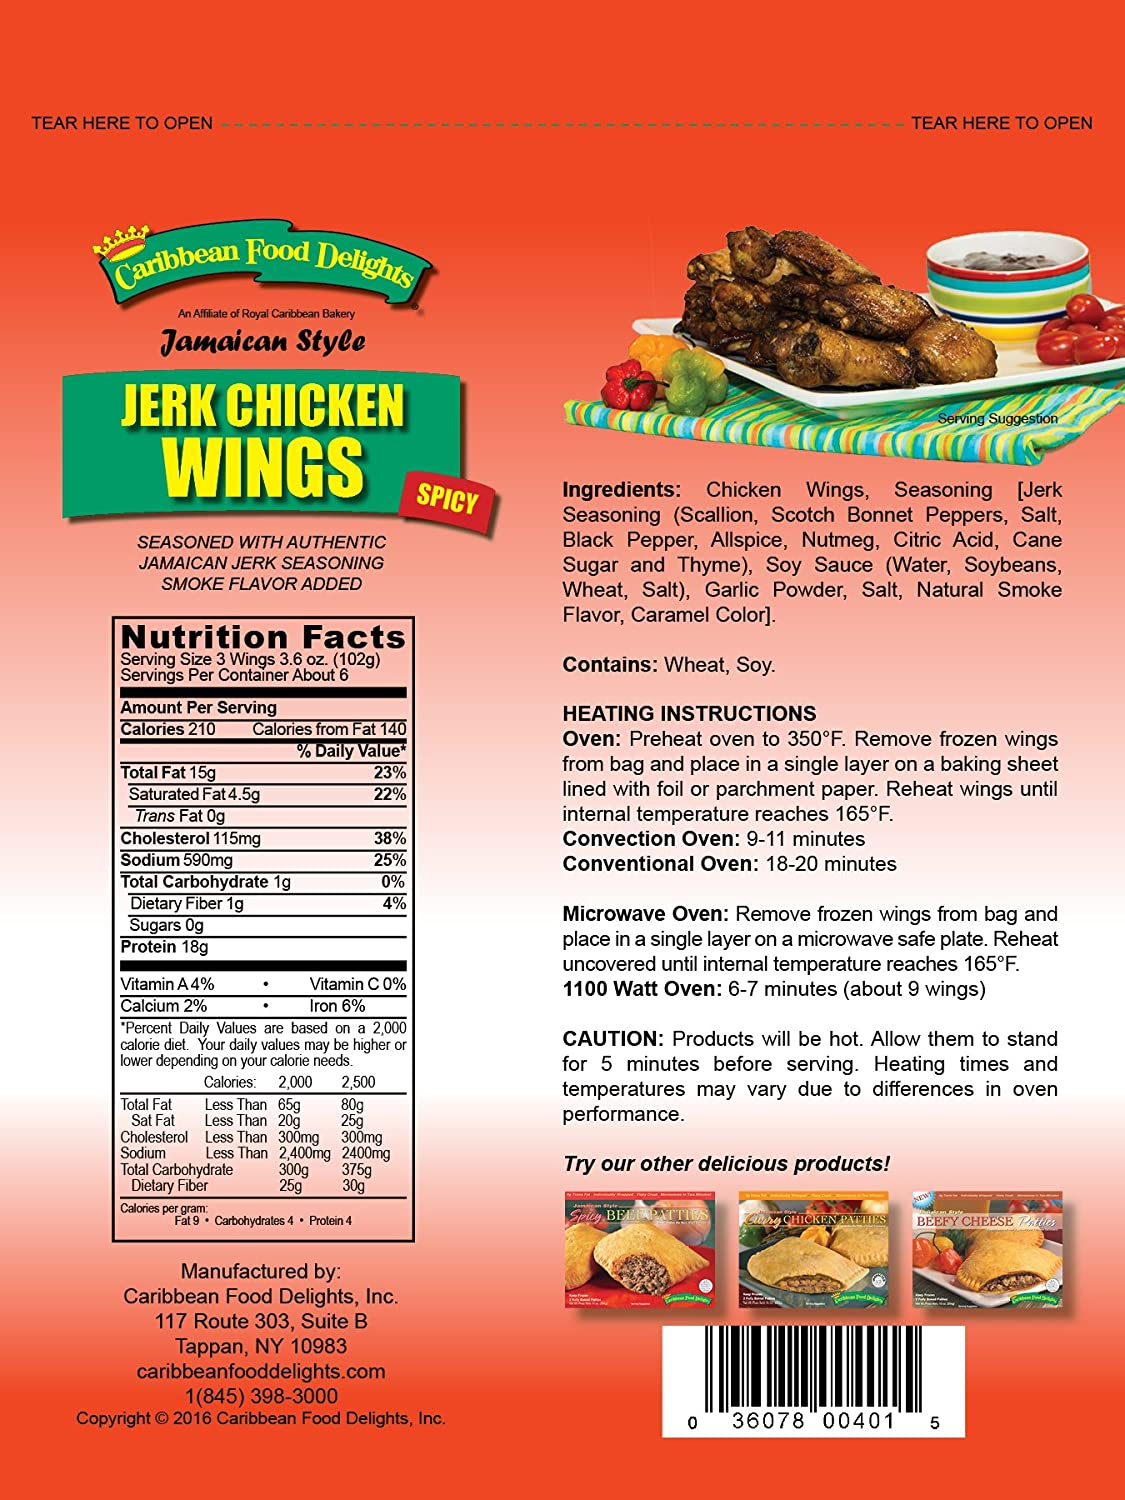 jamaican style jerk chicken wings fully cooked spicy 6 bags of